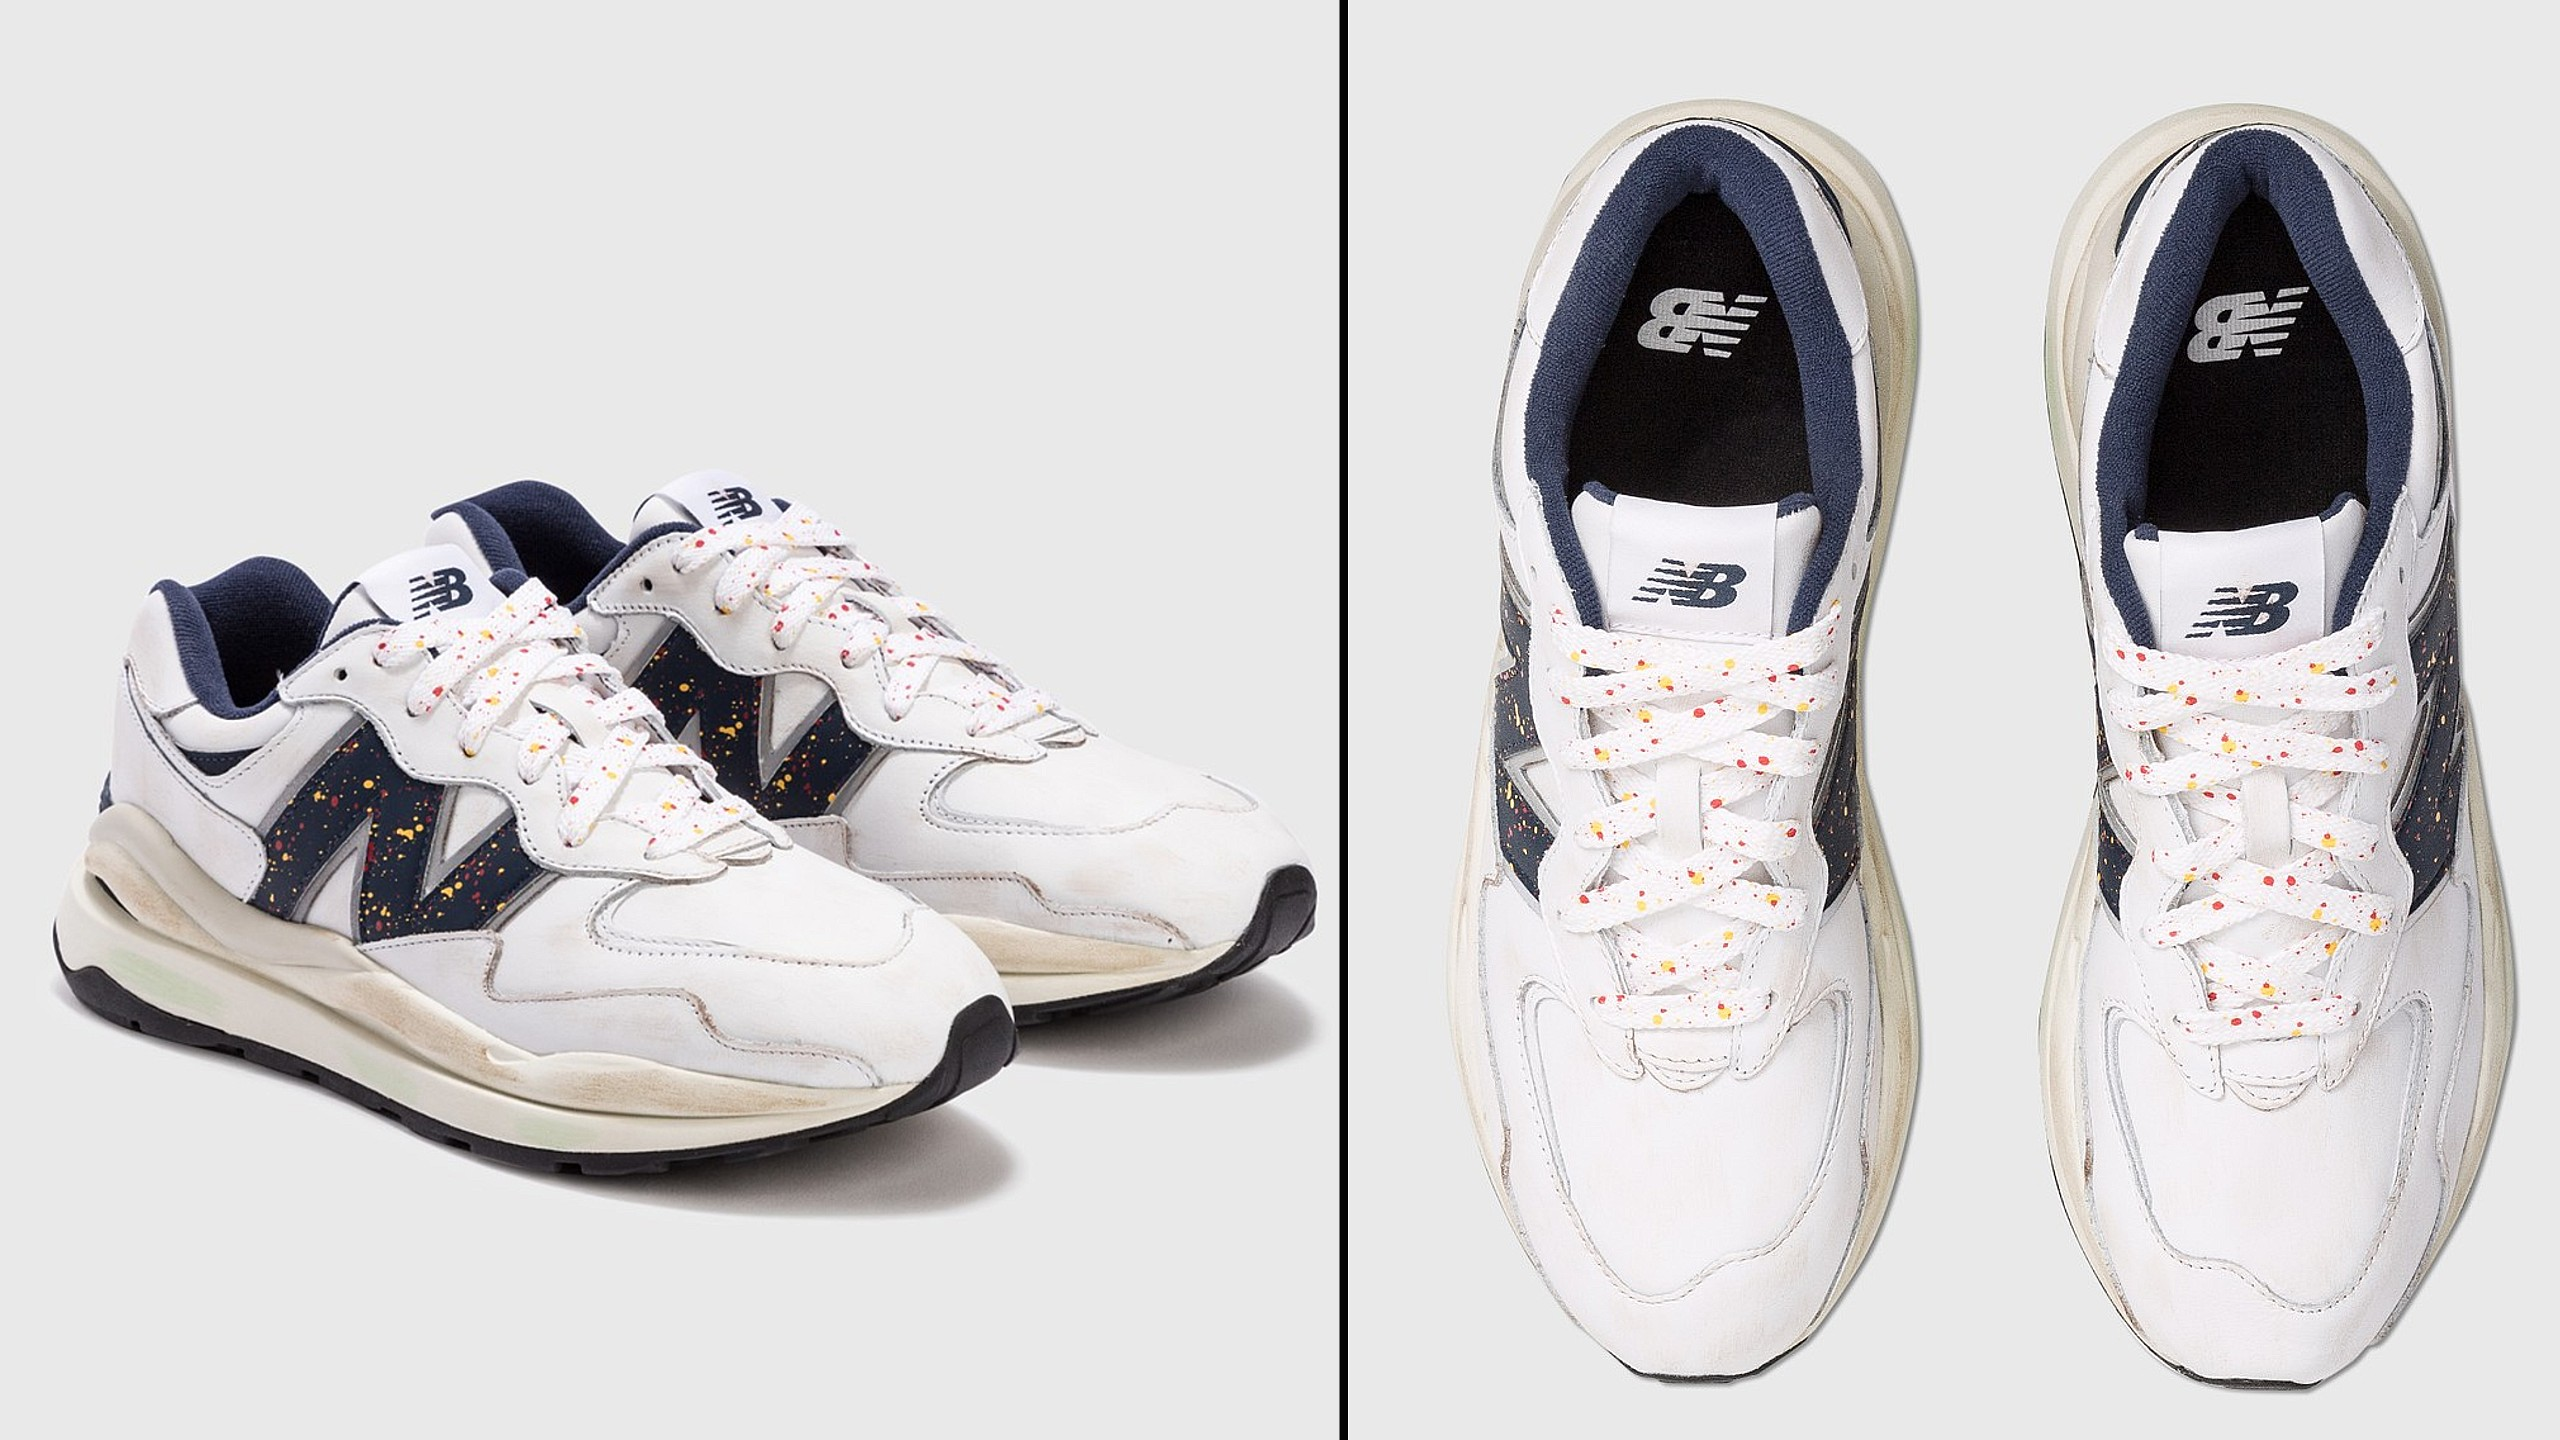 New Balance Father's Day Stained Shoes